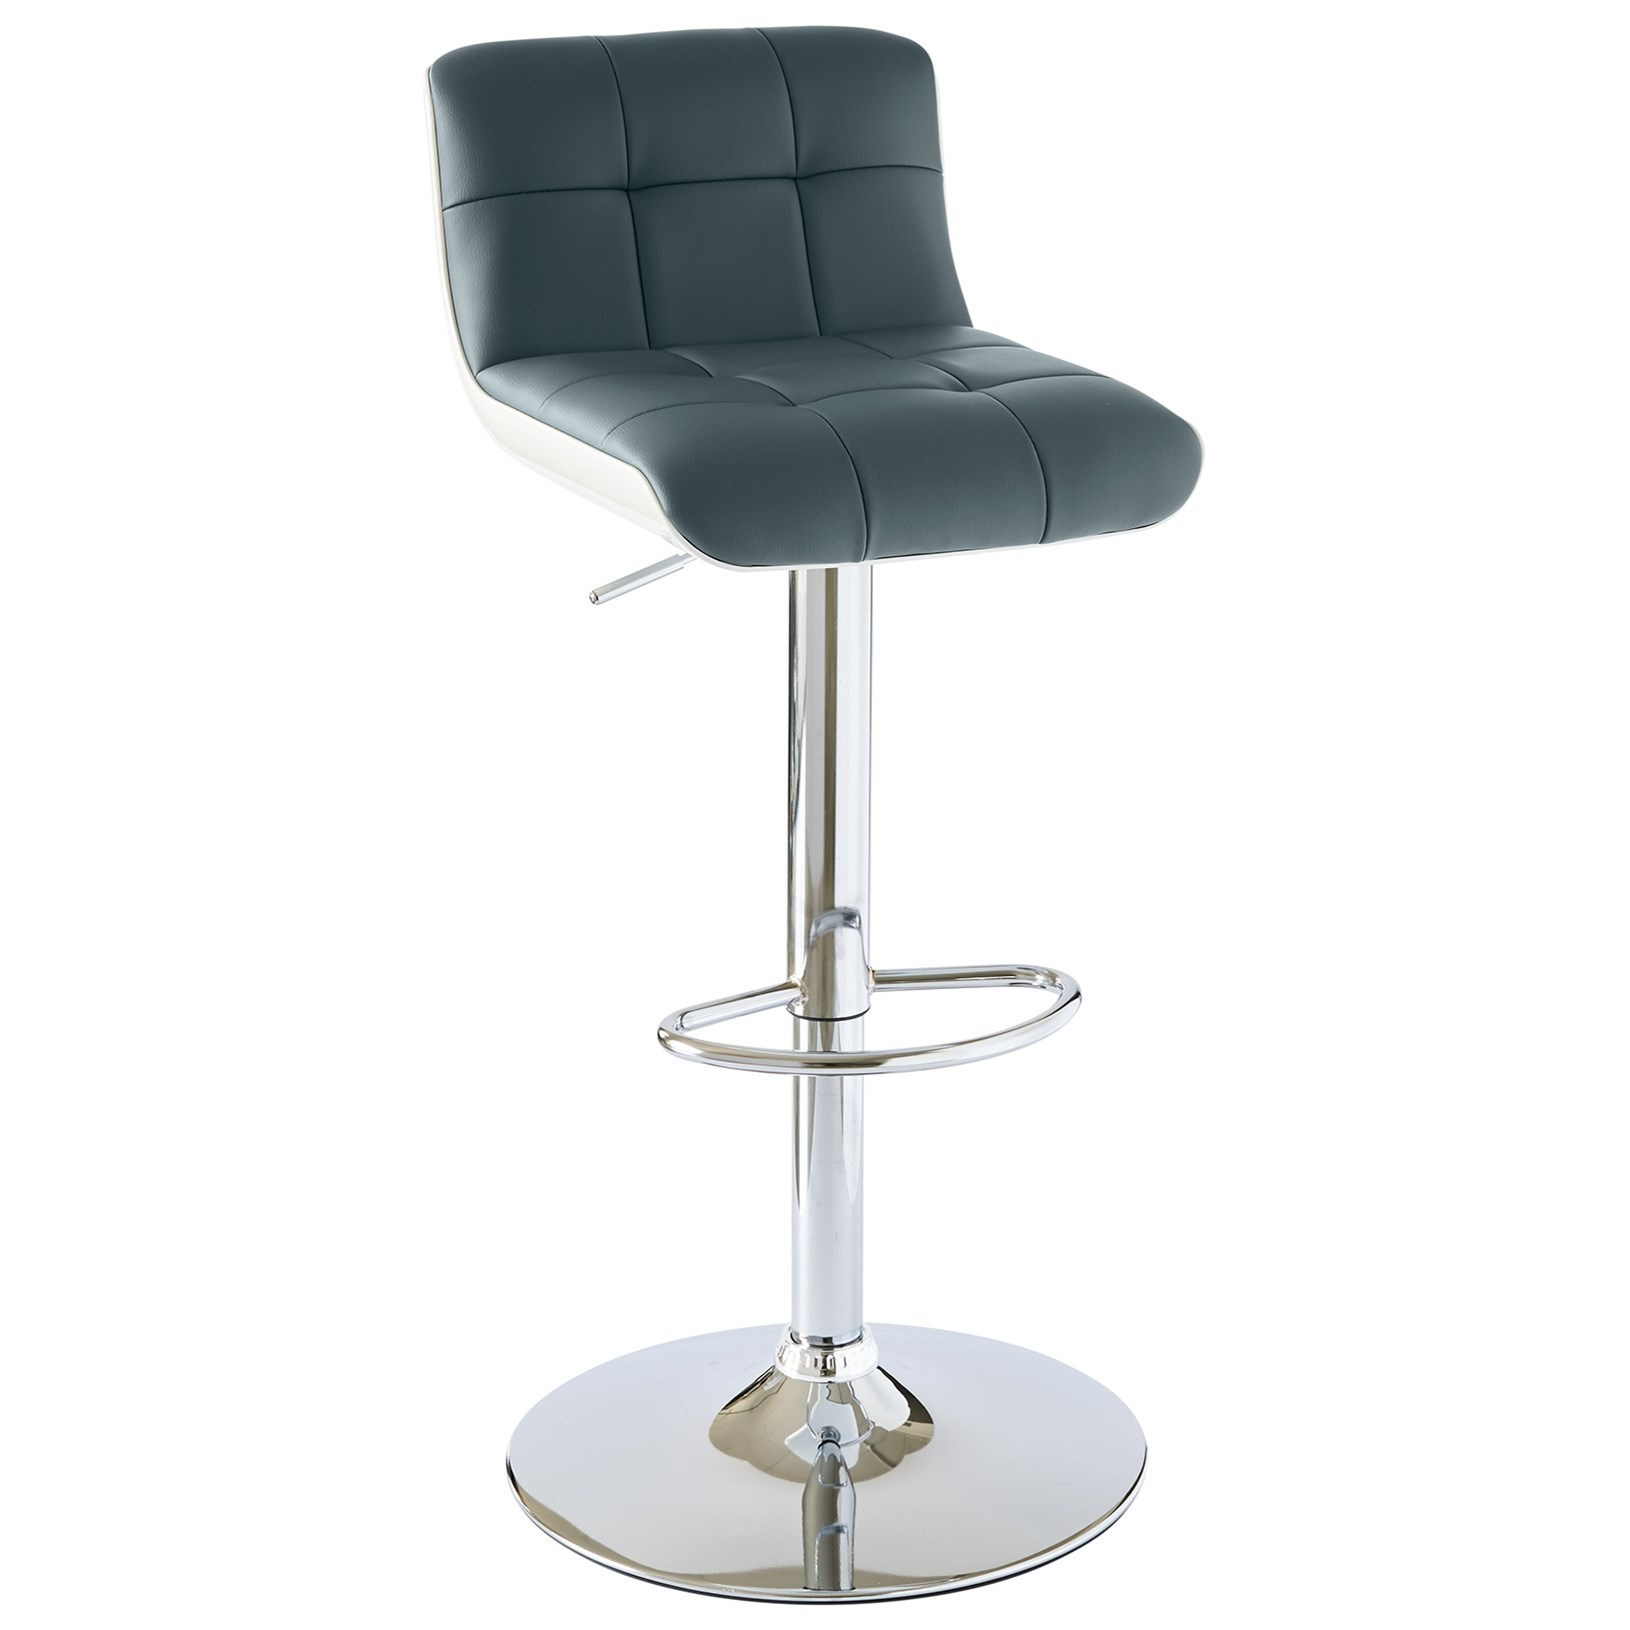 Melanie Bar Stool by Elements International at Lindy's Furniture Company